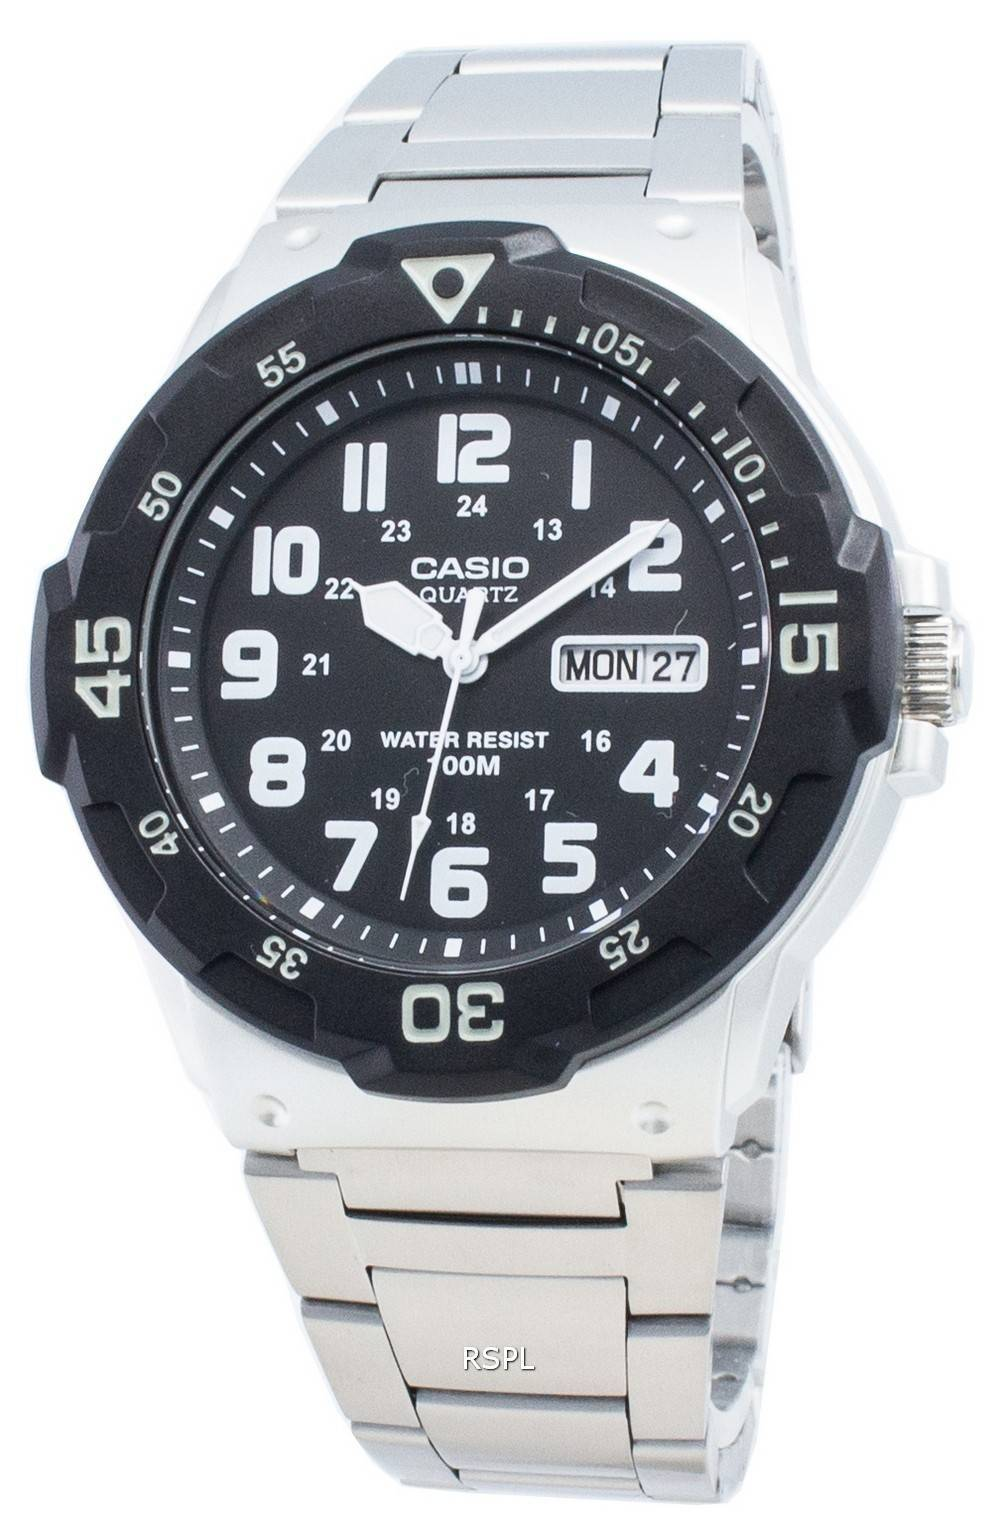 Casio Jugend MRW-200HD-1BV Quarz Herrenuhr